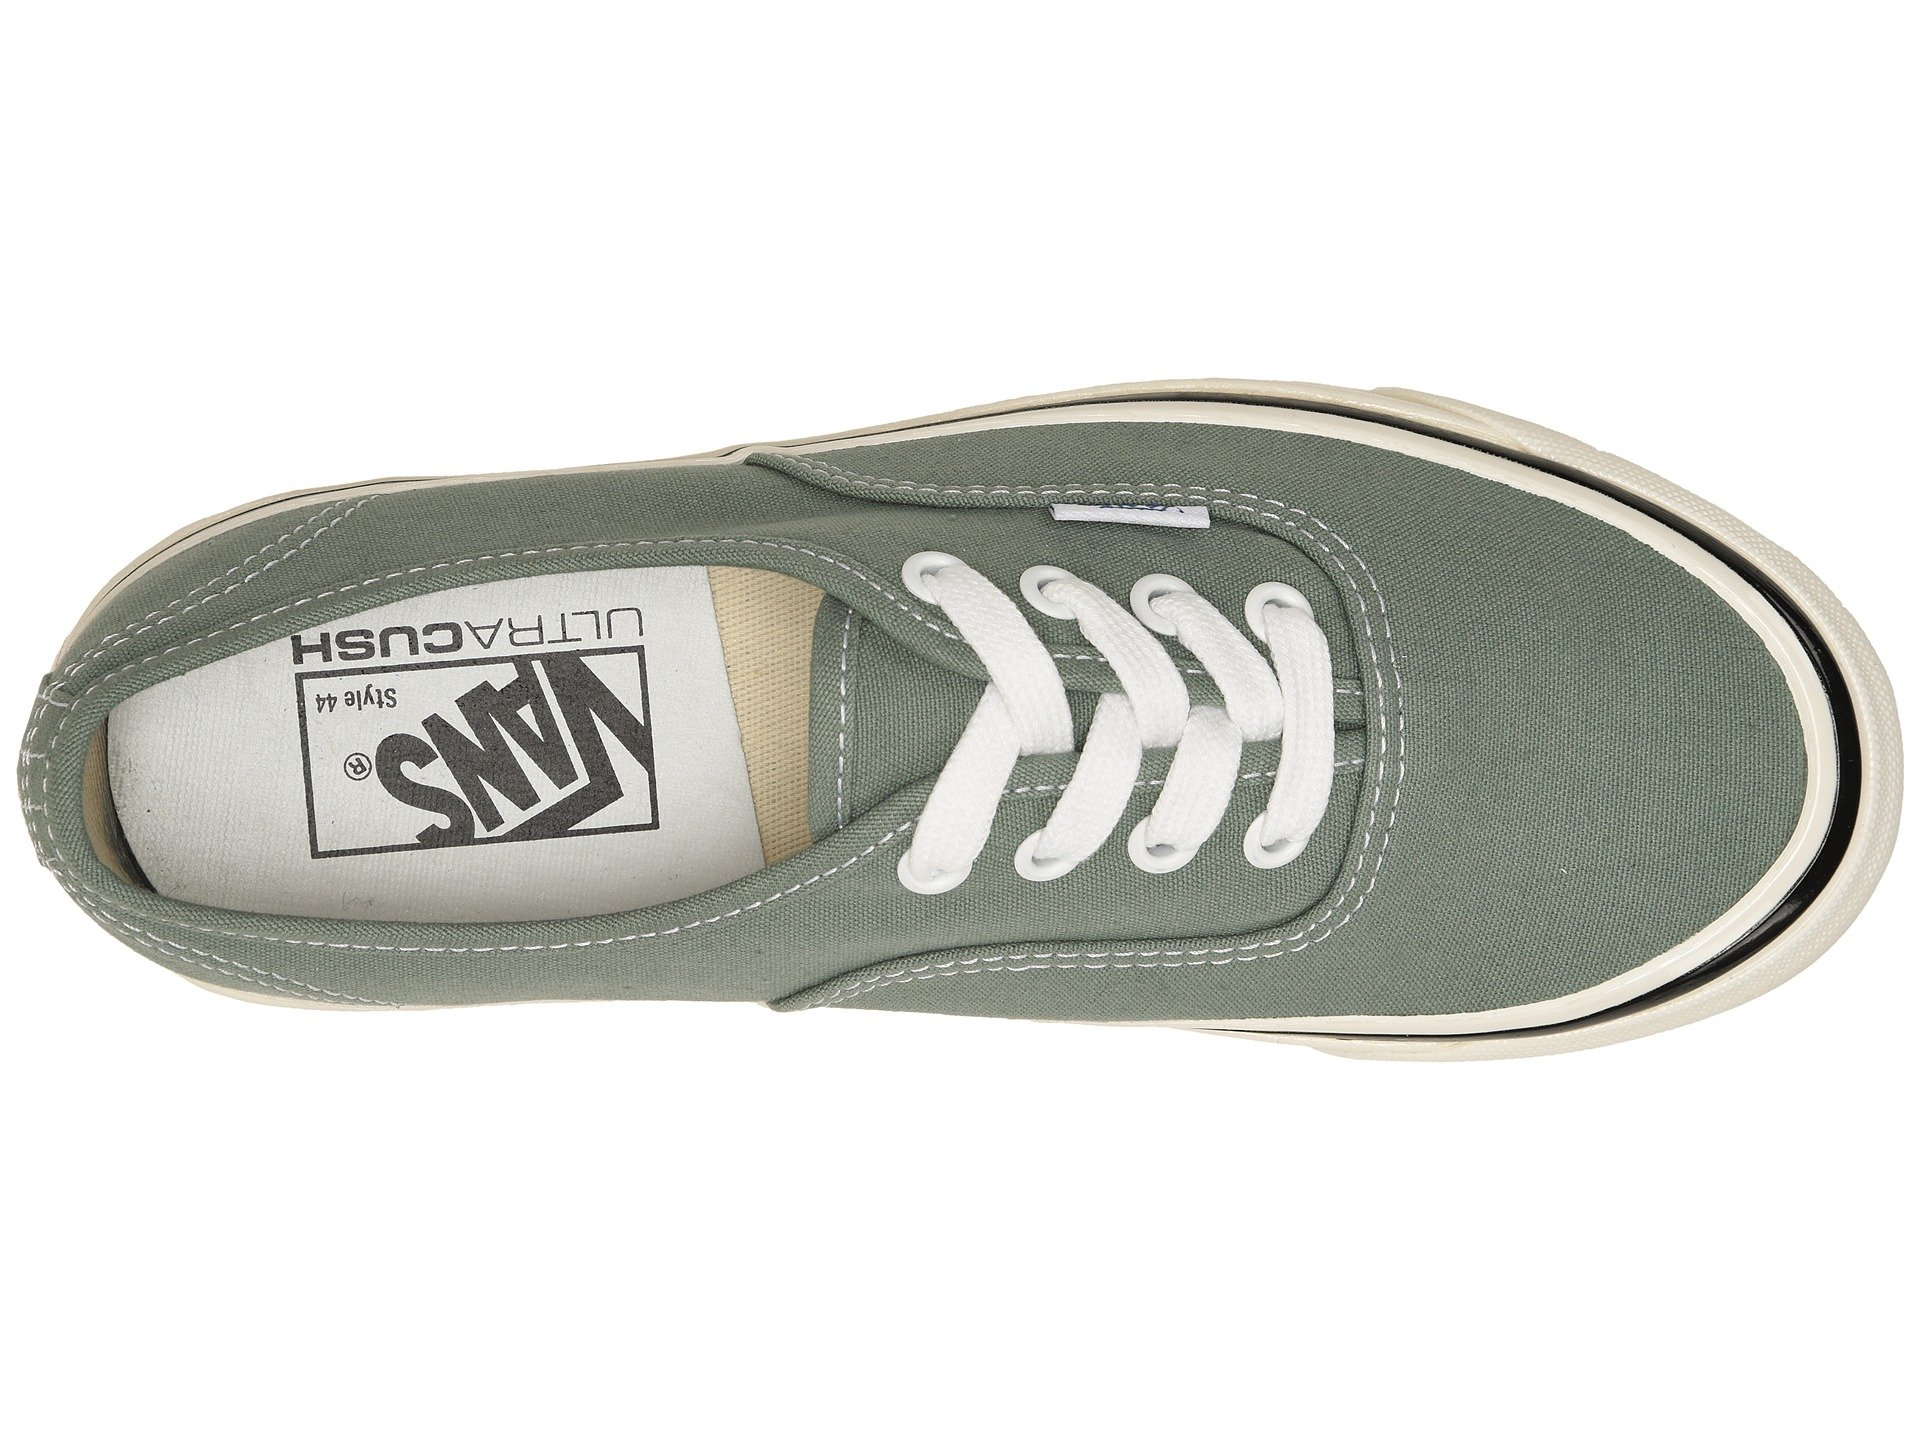 a243ac37e160b5 Vans Authentic 44 DX at Luxury.Zappos.com